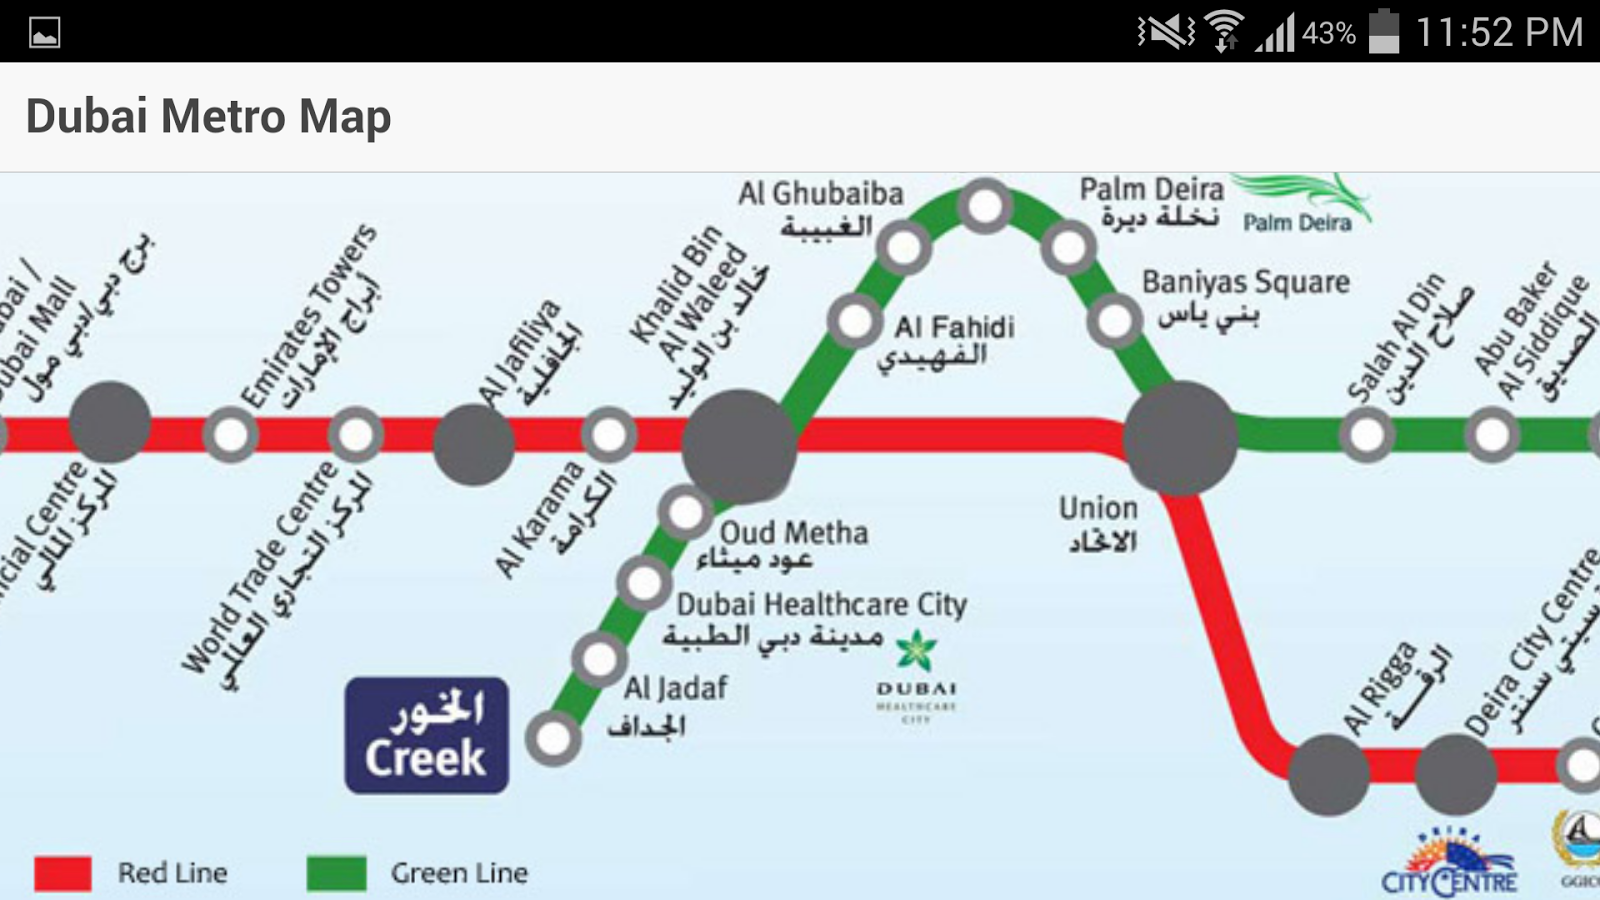 Dubai Metro Map - Android Apps on Google Play